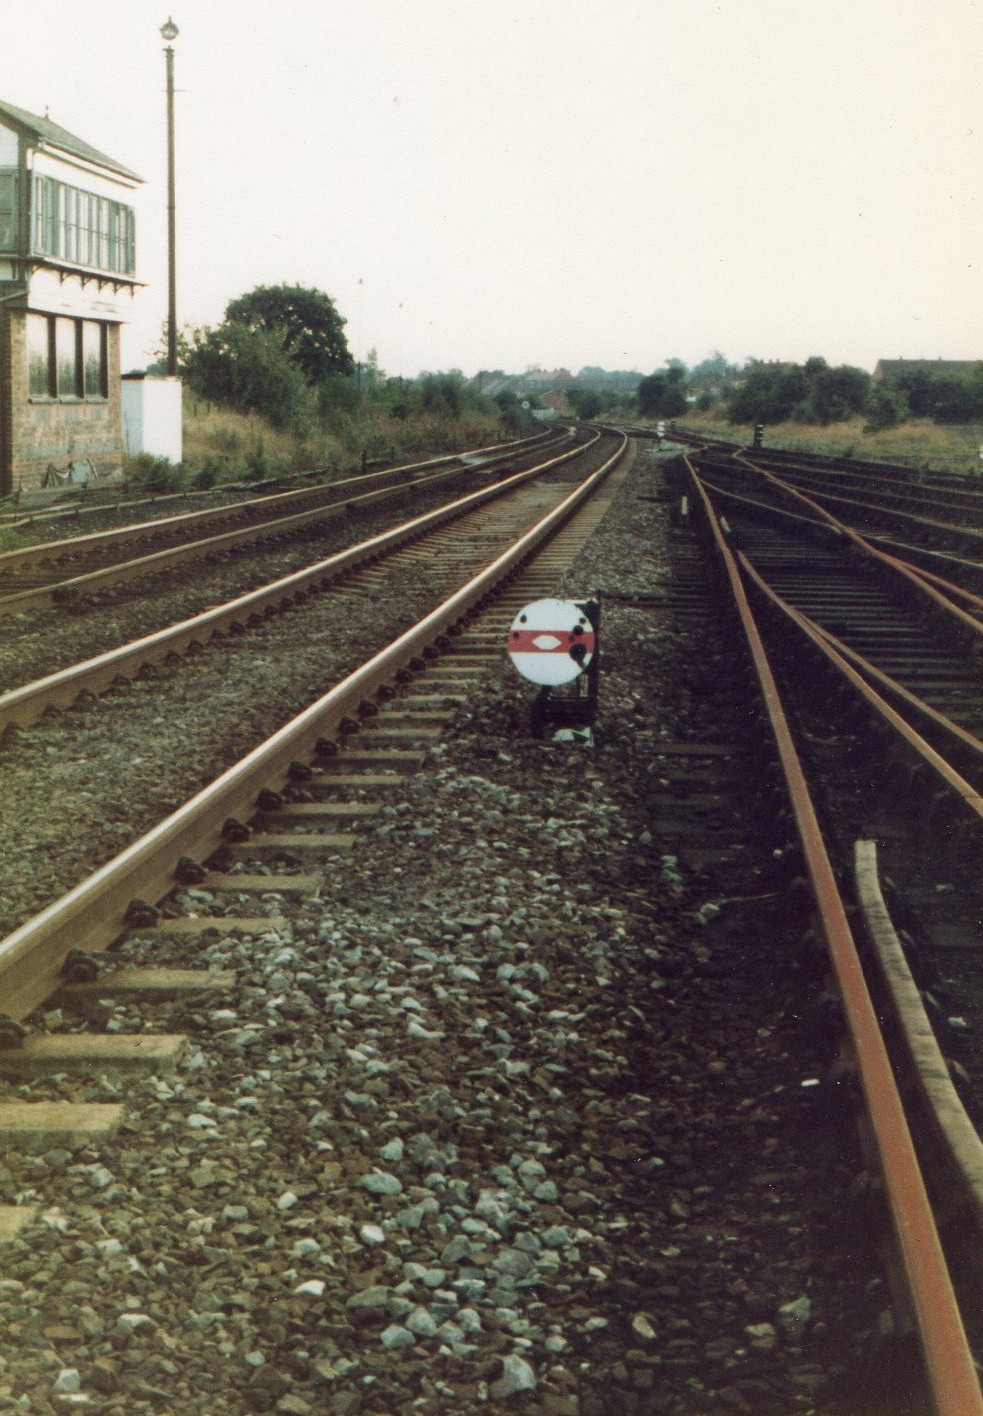 View looking south with No1 Signal Box on the left.